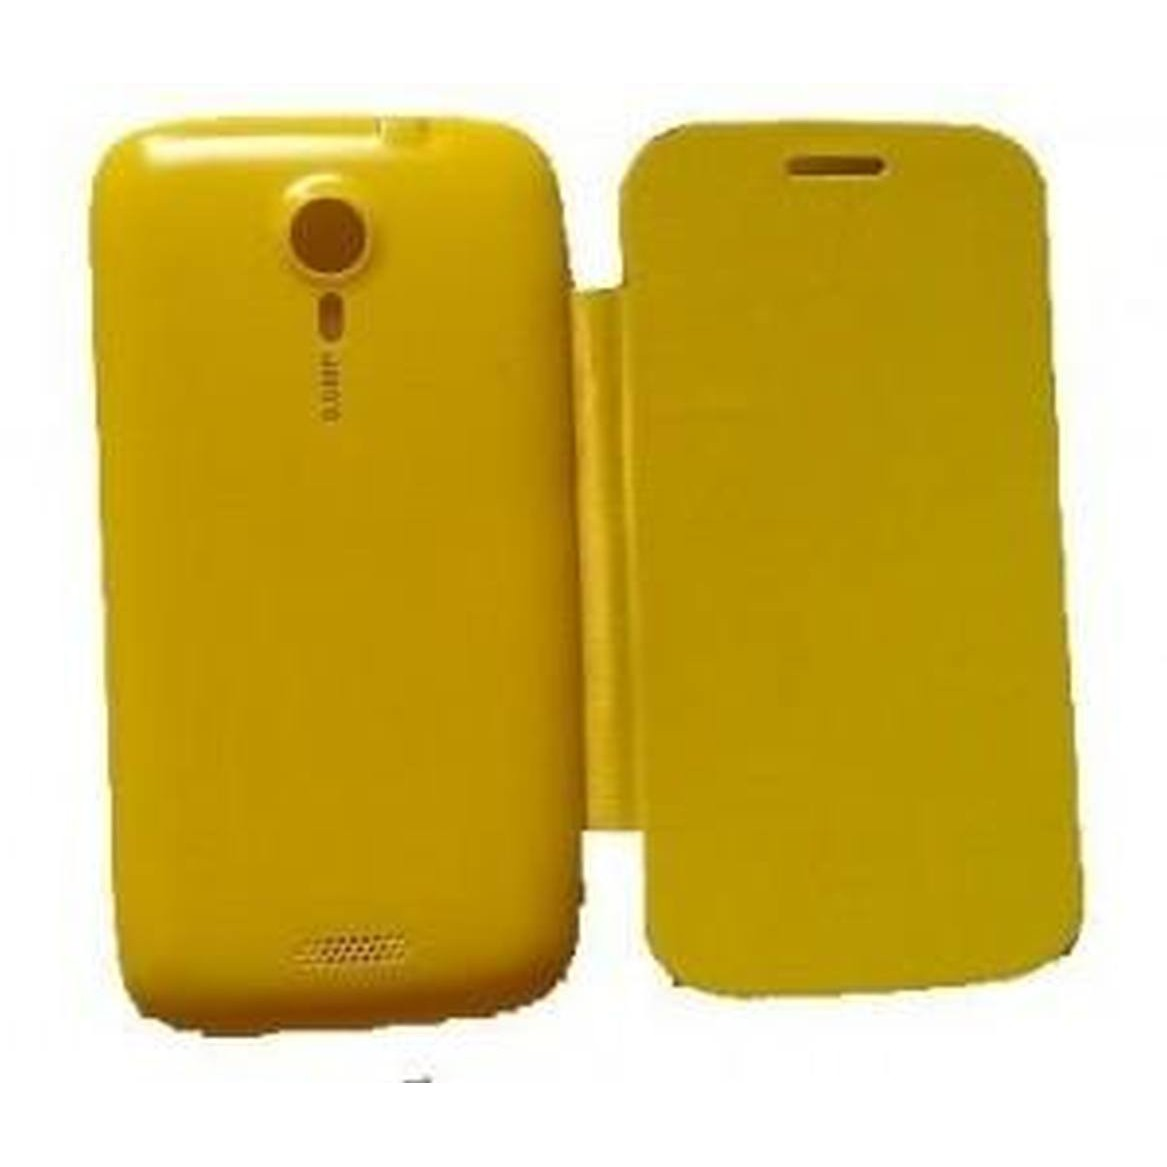 official photos 159b8 a8d3d Flip Cover for Micromax A116 Canvas HD - Yellow